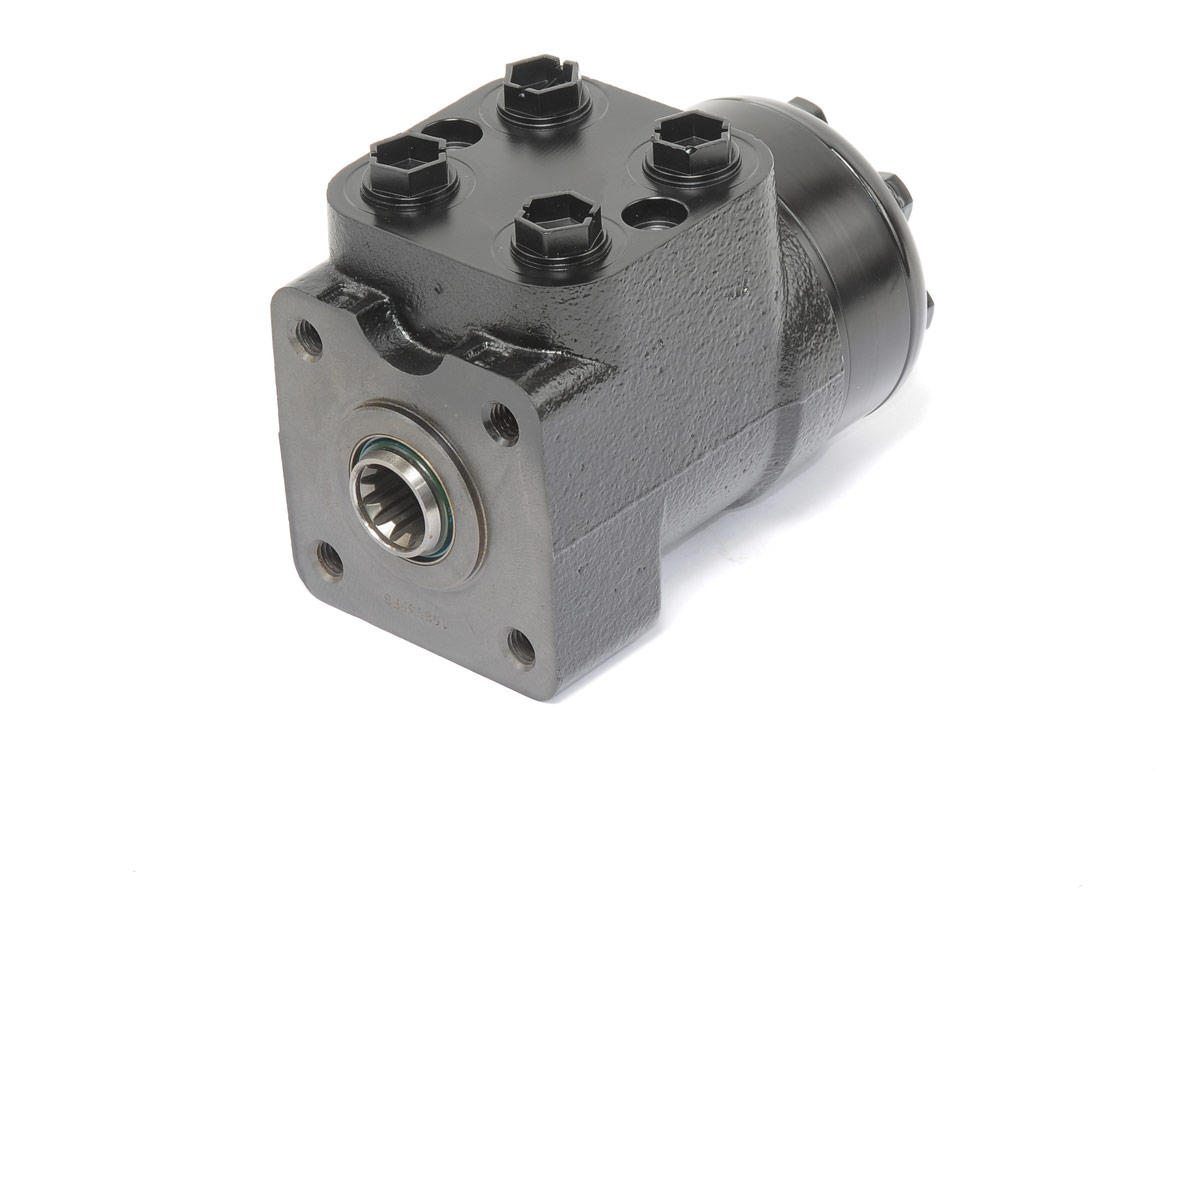 GS22160B  Replacement for Eaton 211-1056-002 - Midwest Steering 56e16460a07